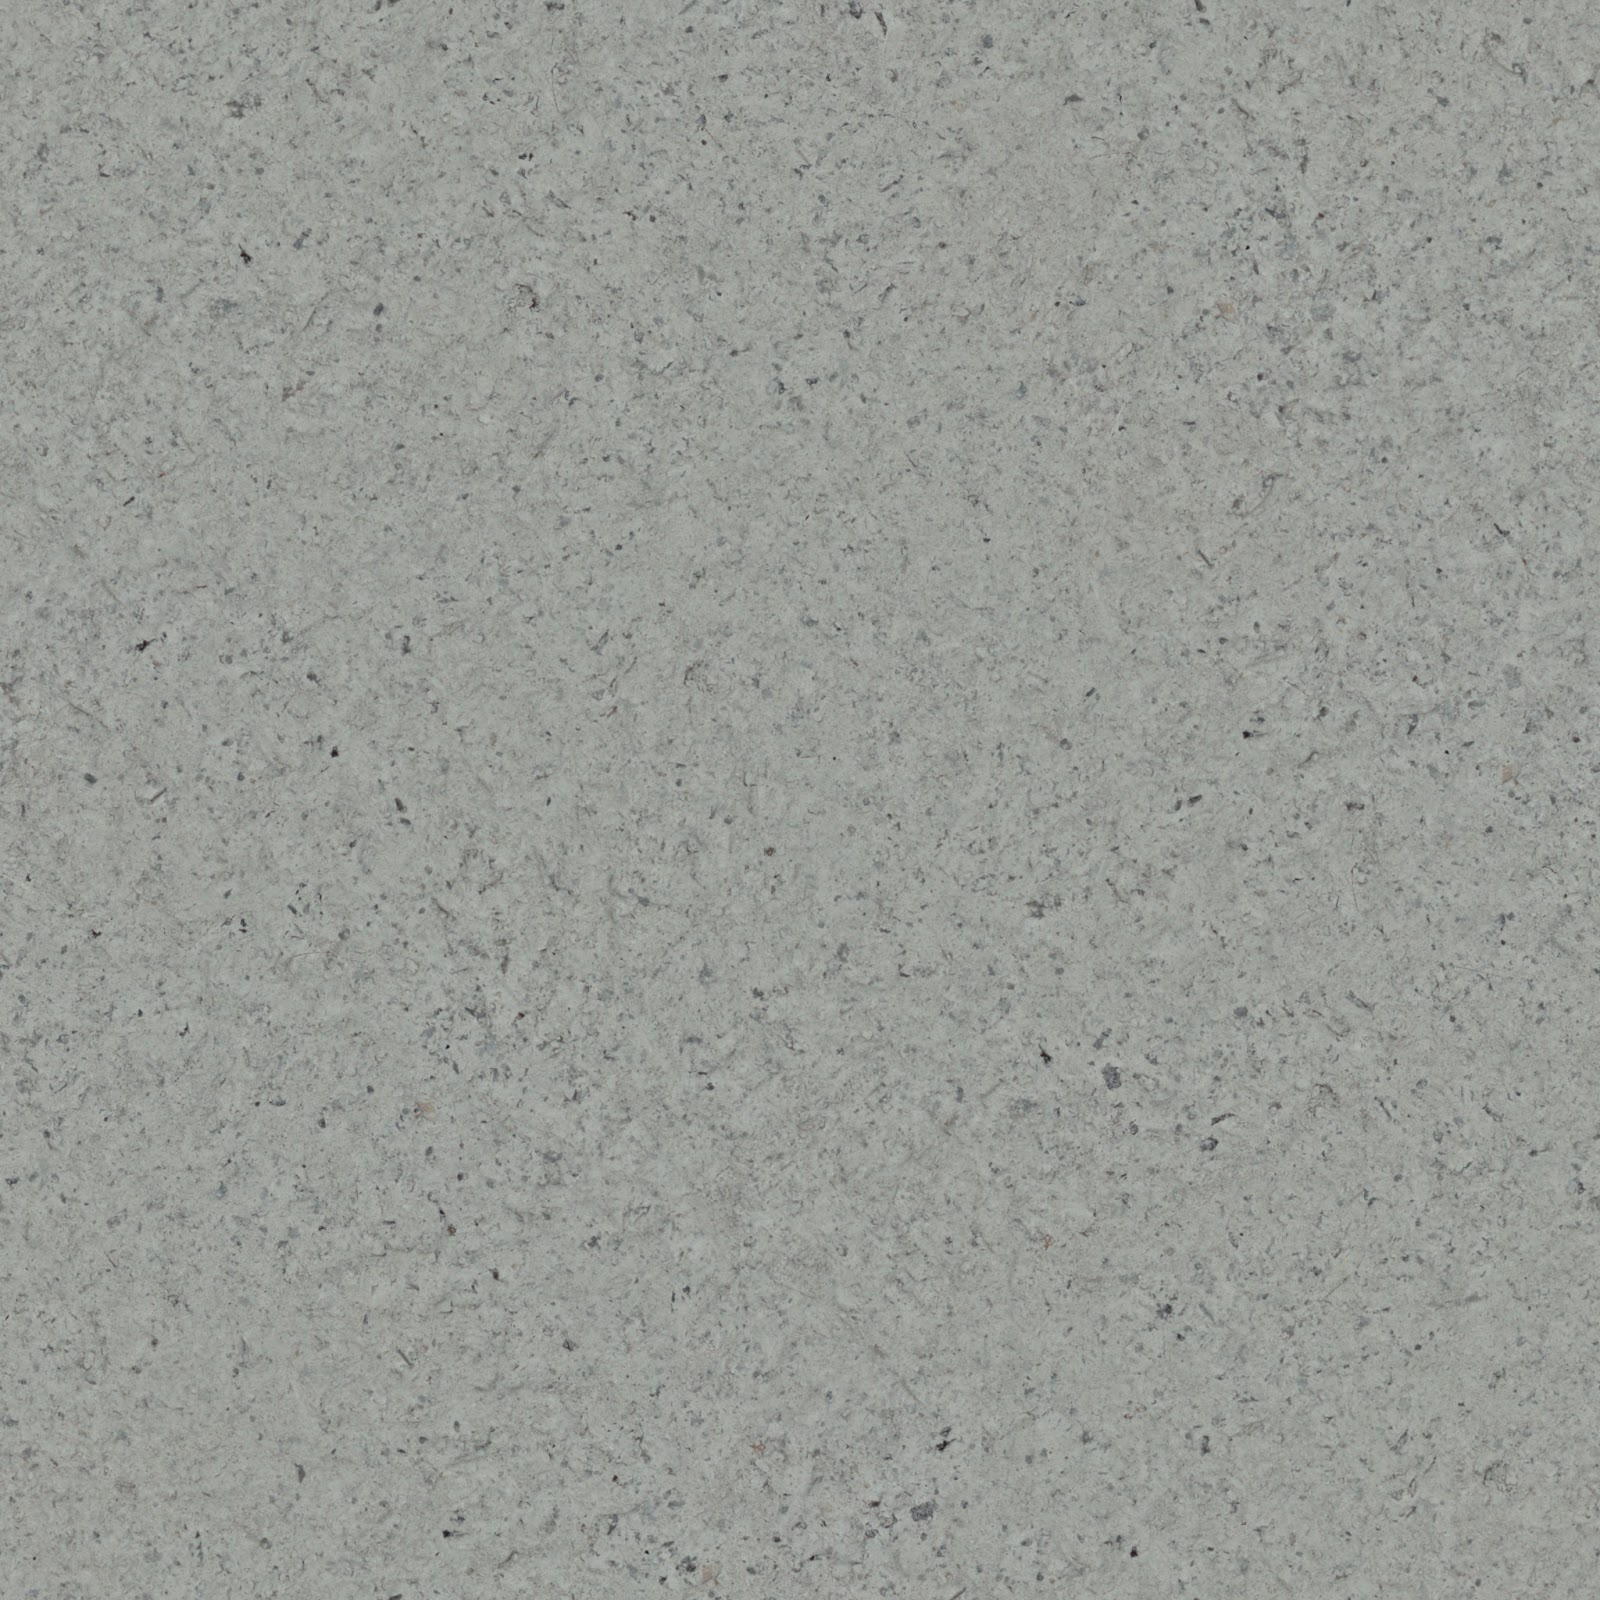 Ground dusty grey seamless texture 2048x2048